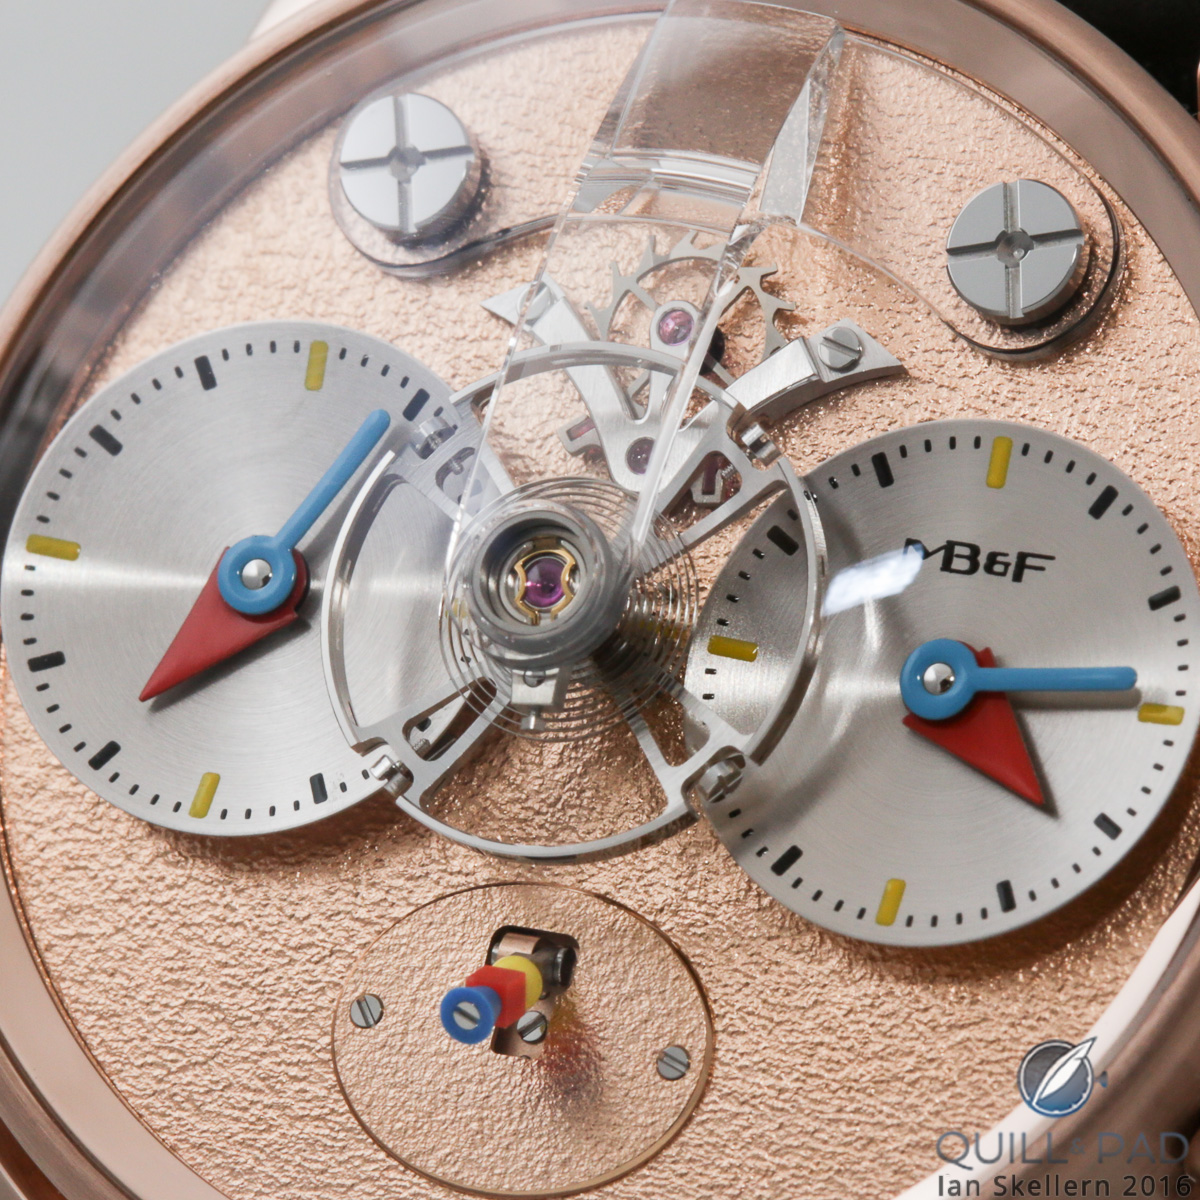 A close look at the dial side of the MB&F LM1 Silberstein in red gold with frosted